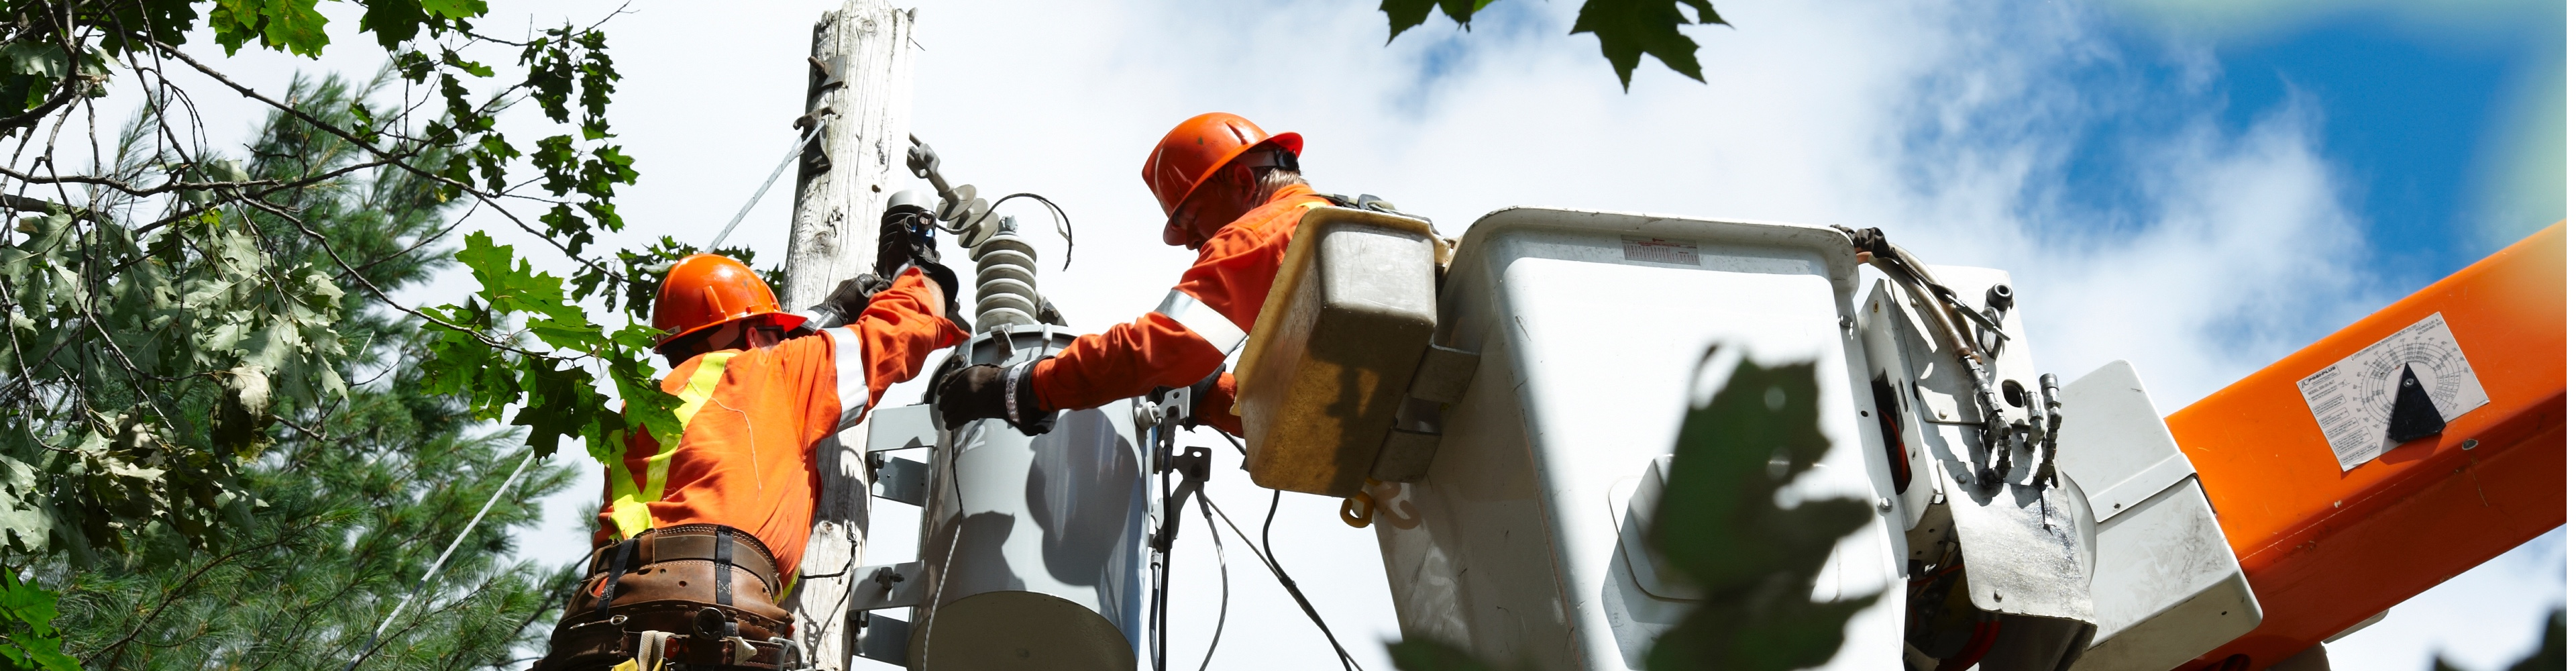 what-causes-outages-veridian